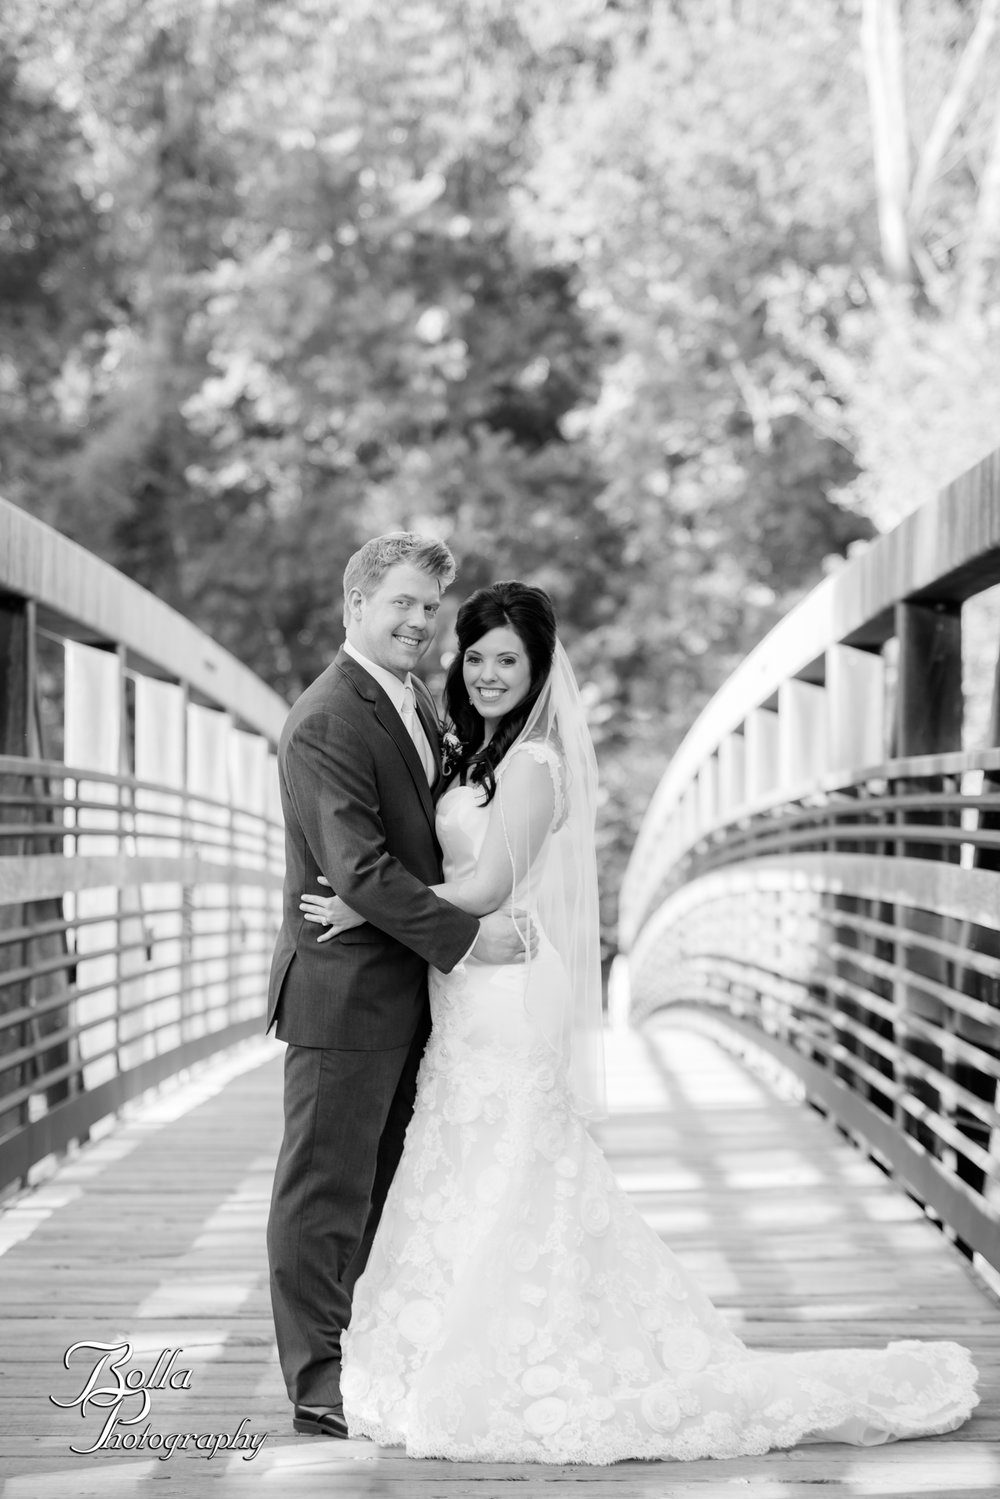 Bolla_photography_edwardsville_wedding_photographer_st_louis_weddings_Reilmann-0413.jpg